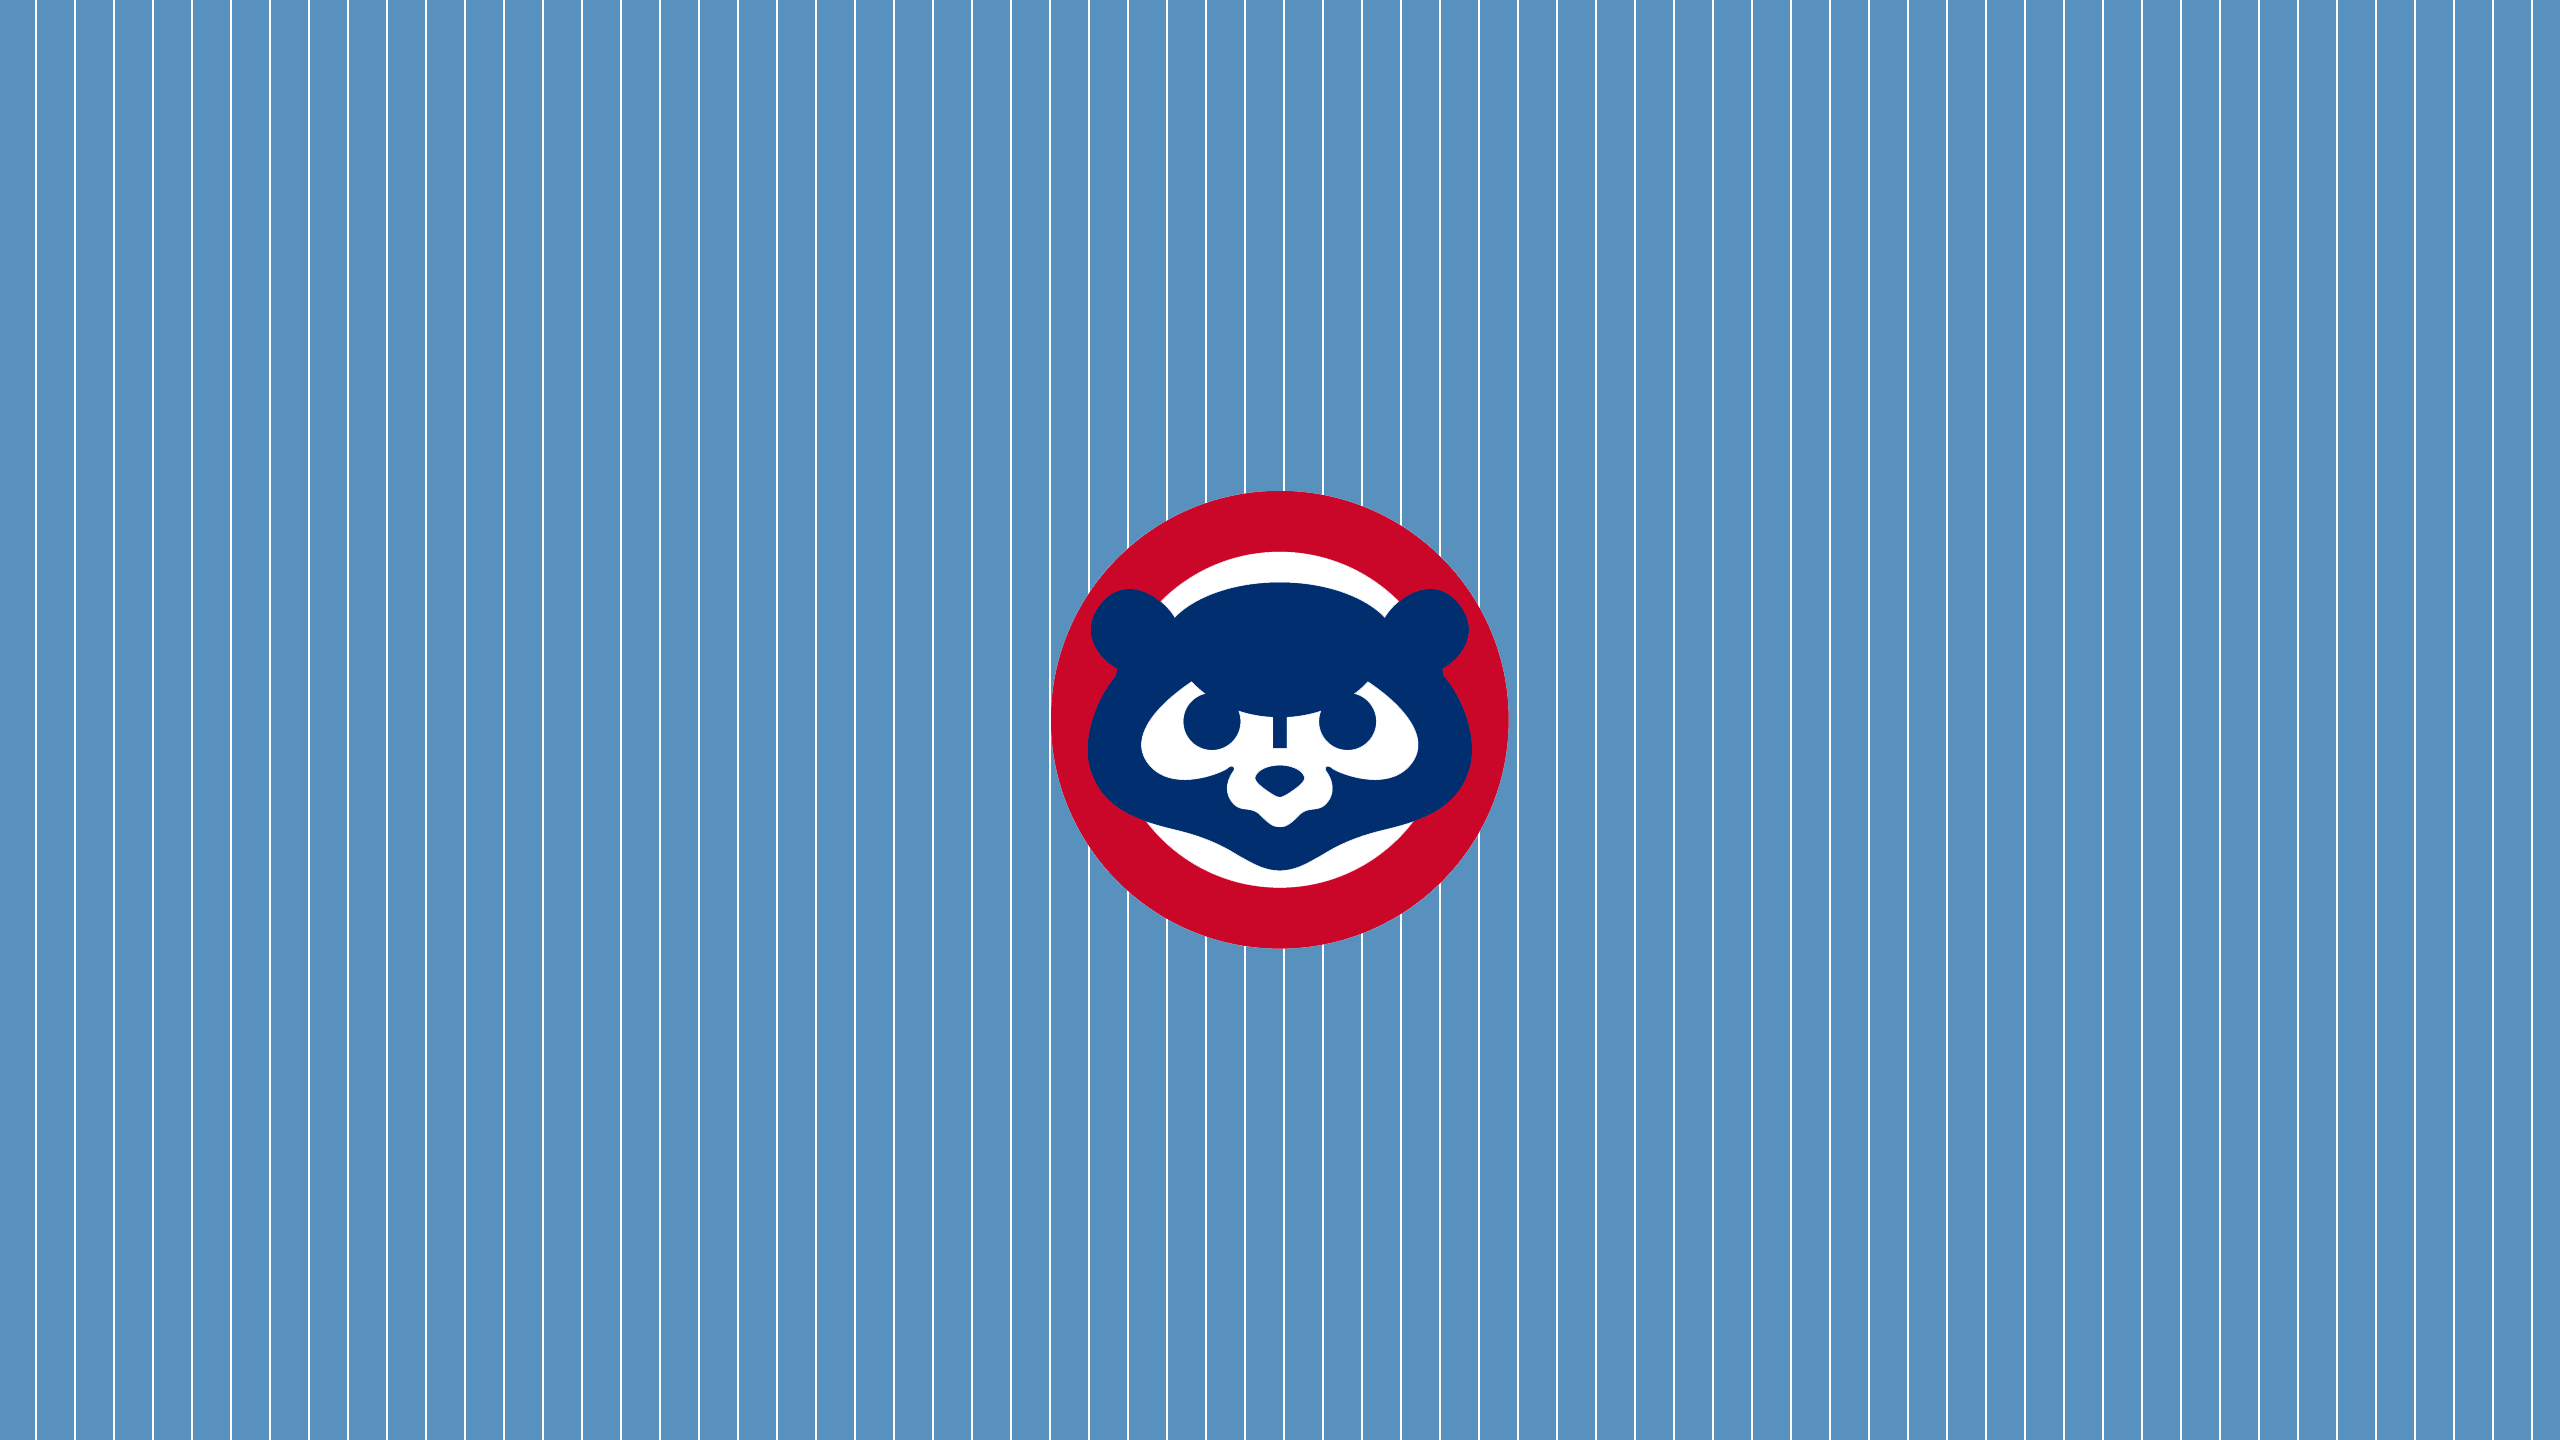 Chicago Cubs (Old School Sleeve Logo)